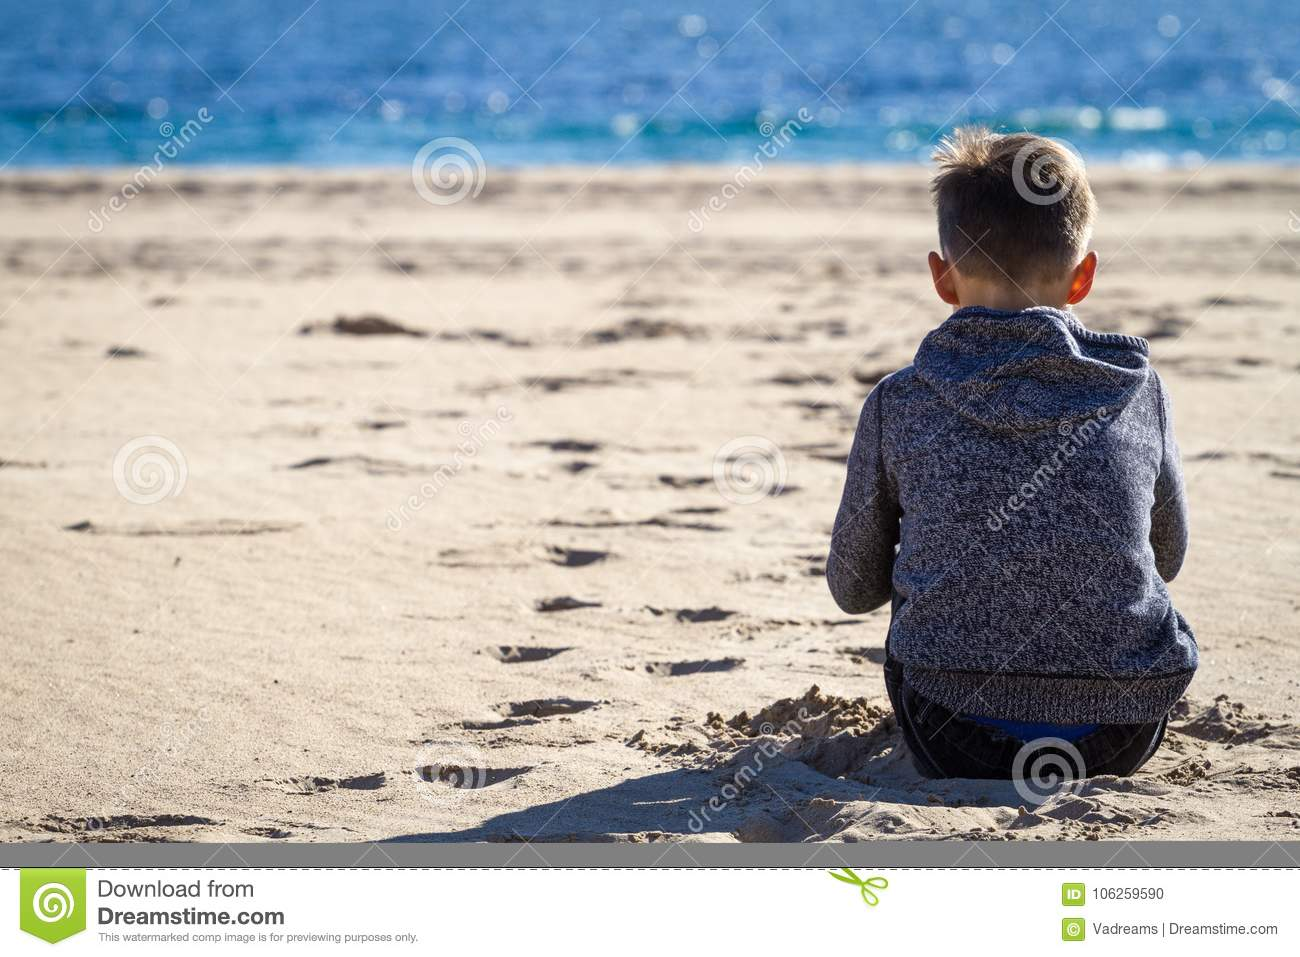 Sad alone boy sitting on the beach looking at sea and thinking